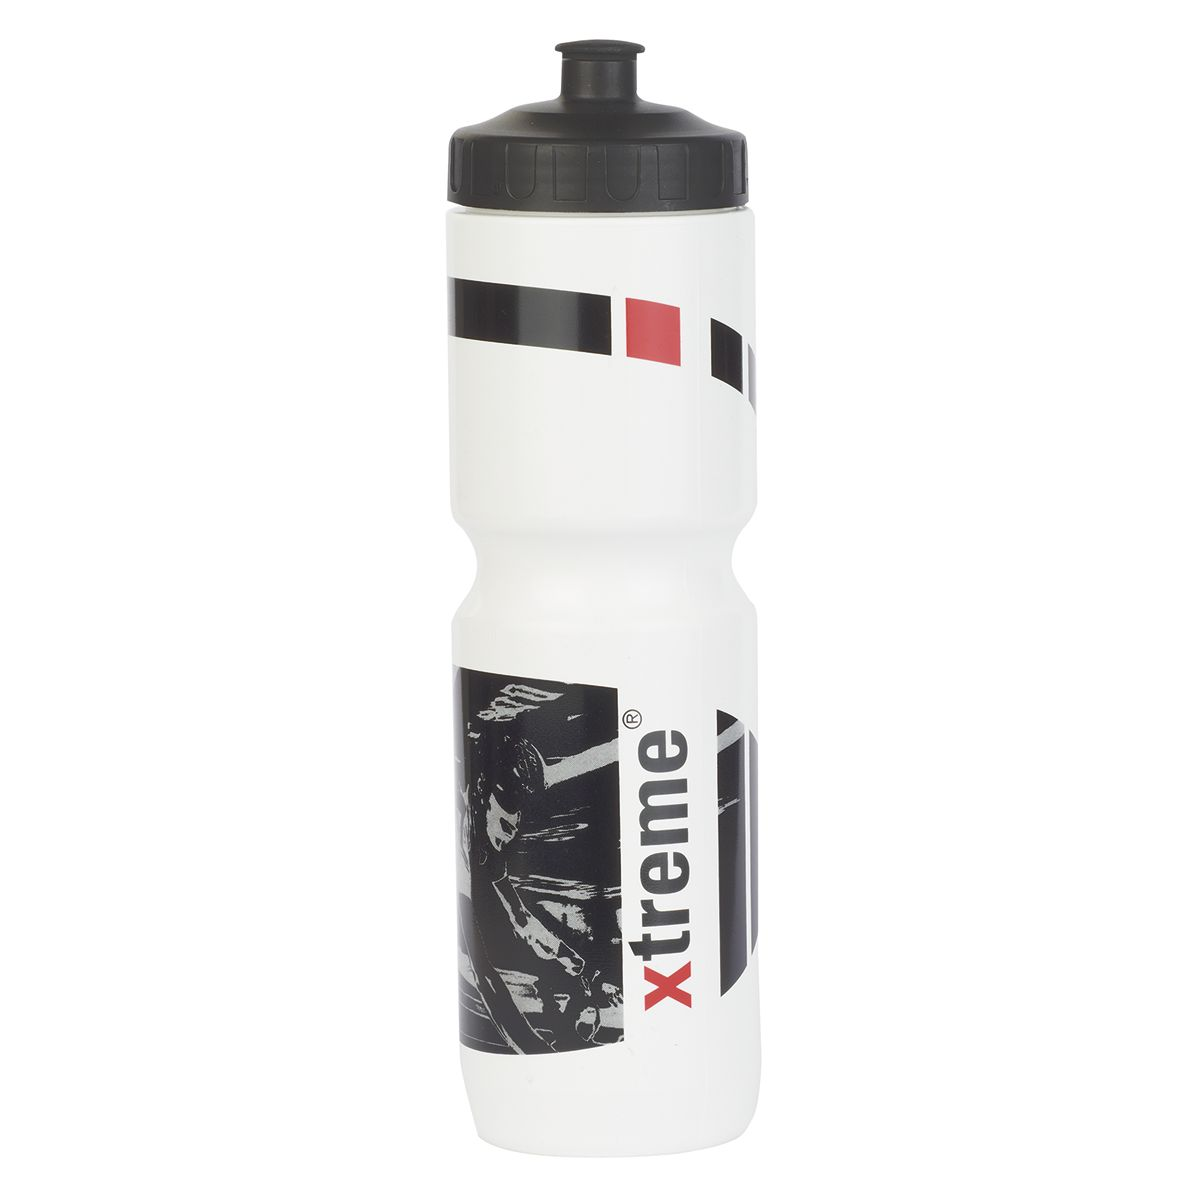 Hobby 1000 ml drinks bottle